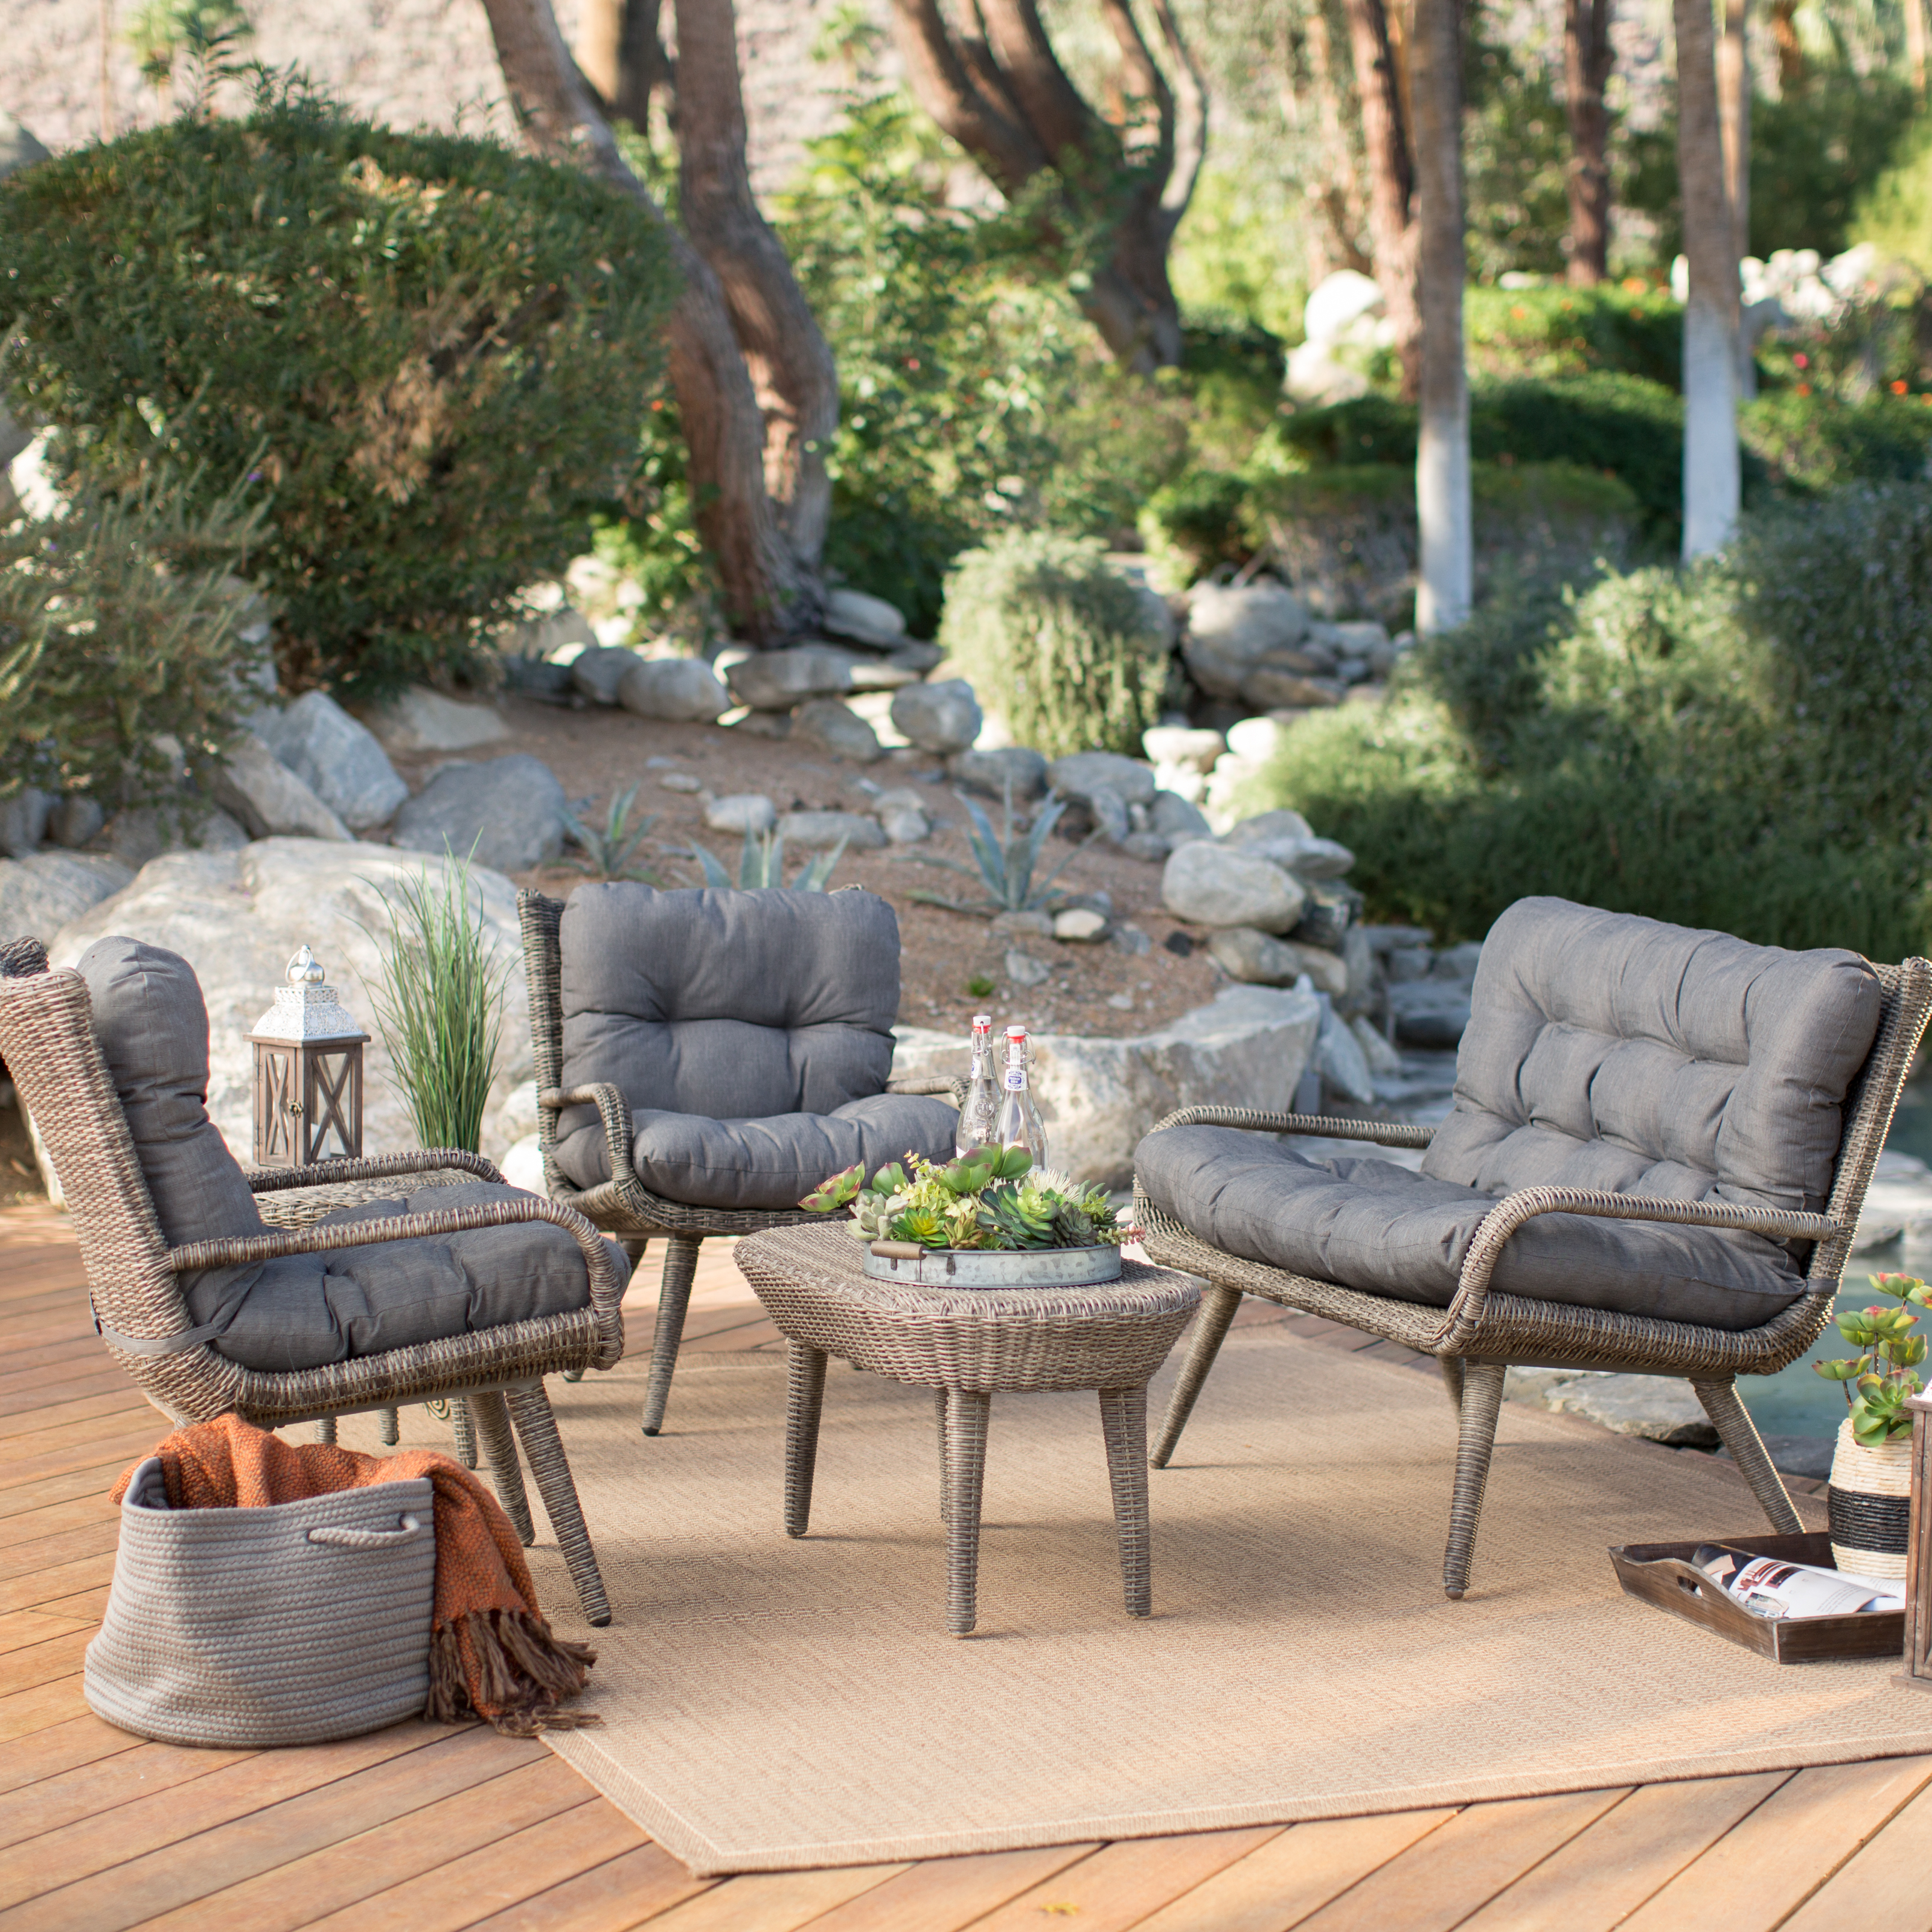 belham living rio all weather wicker conversation set seats 4 conversation patio sets at. Black Bedroom Furniture Sets. Home Design Ideas